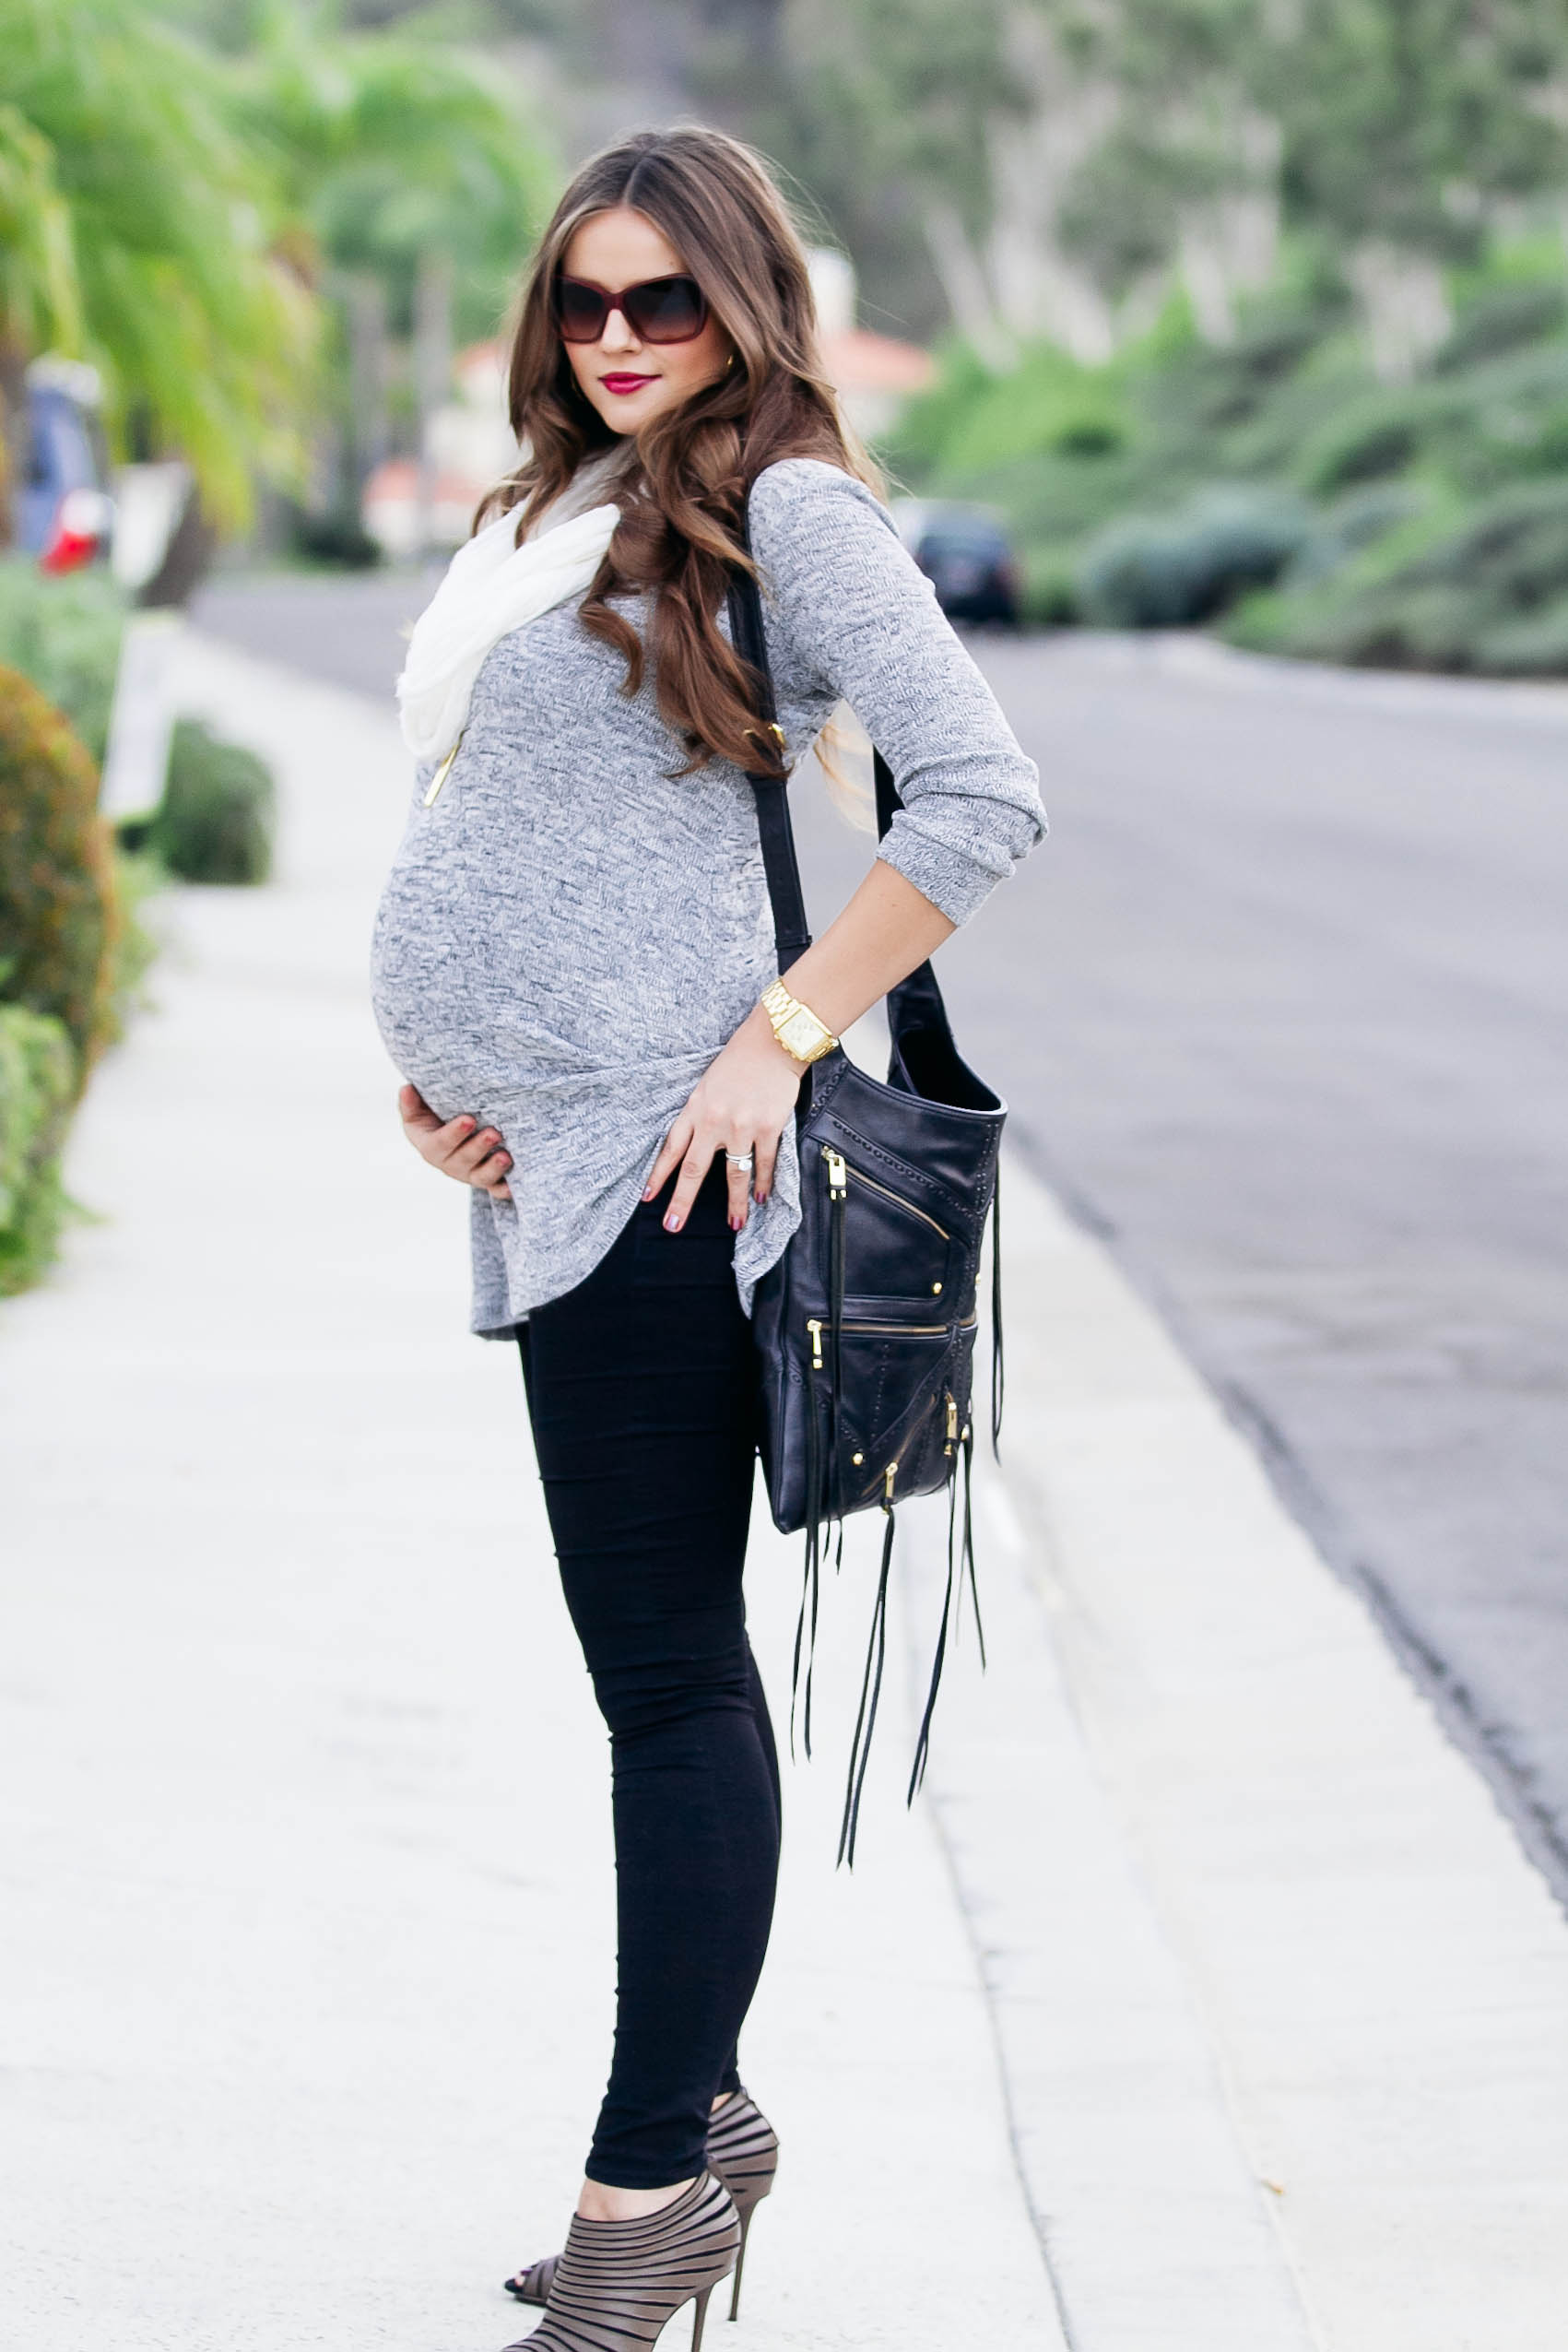 #BumpStyle // Grey Tunic & Black Skinny Jeans